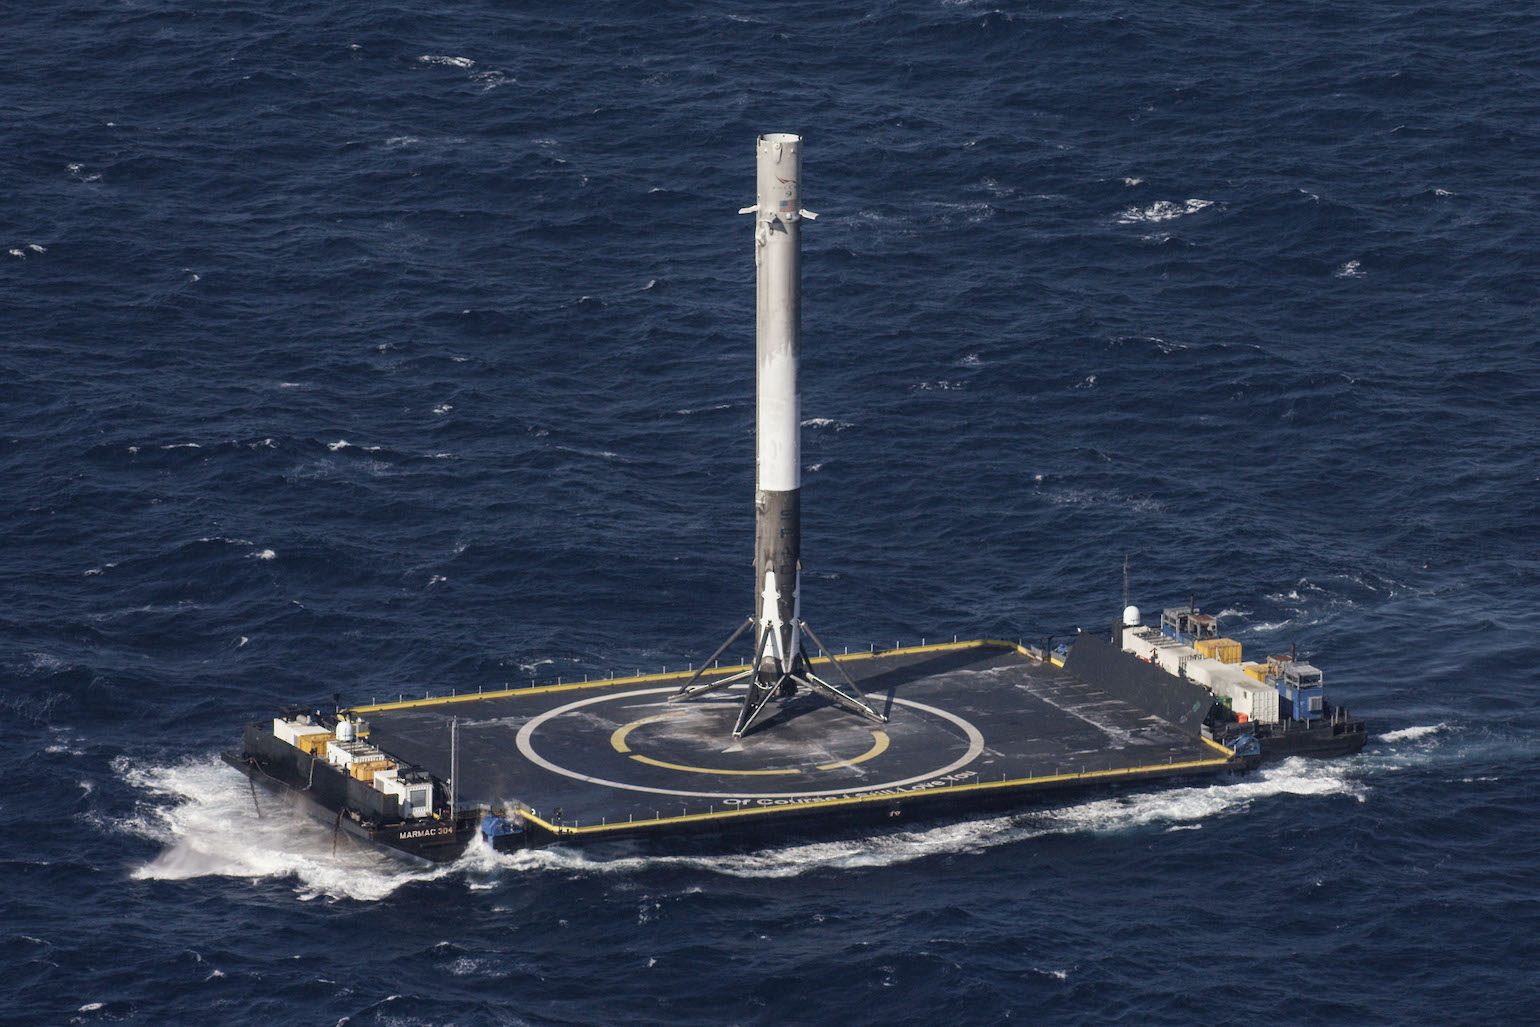 Falcon 9, on a boat